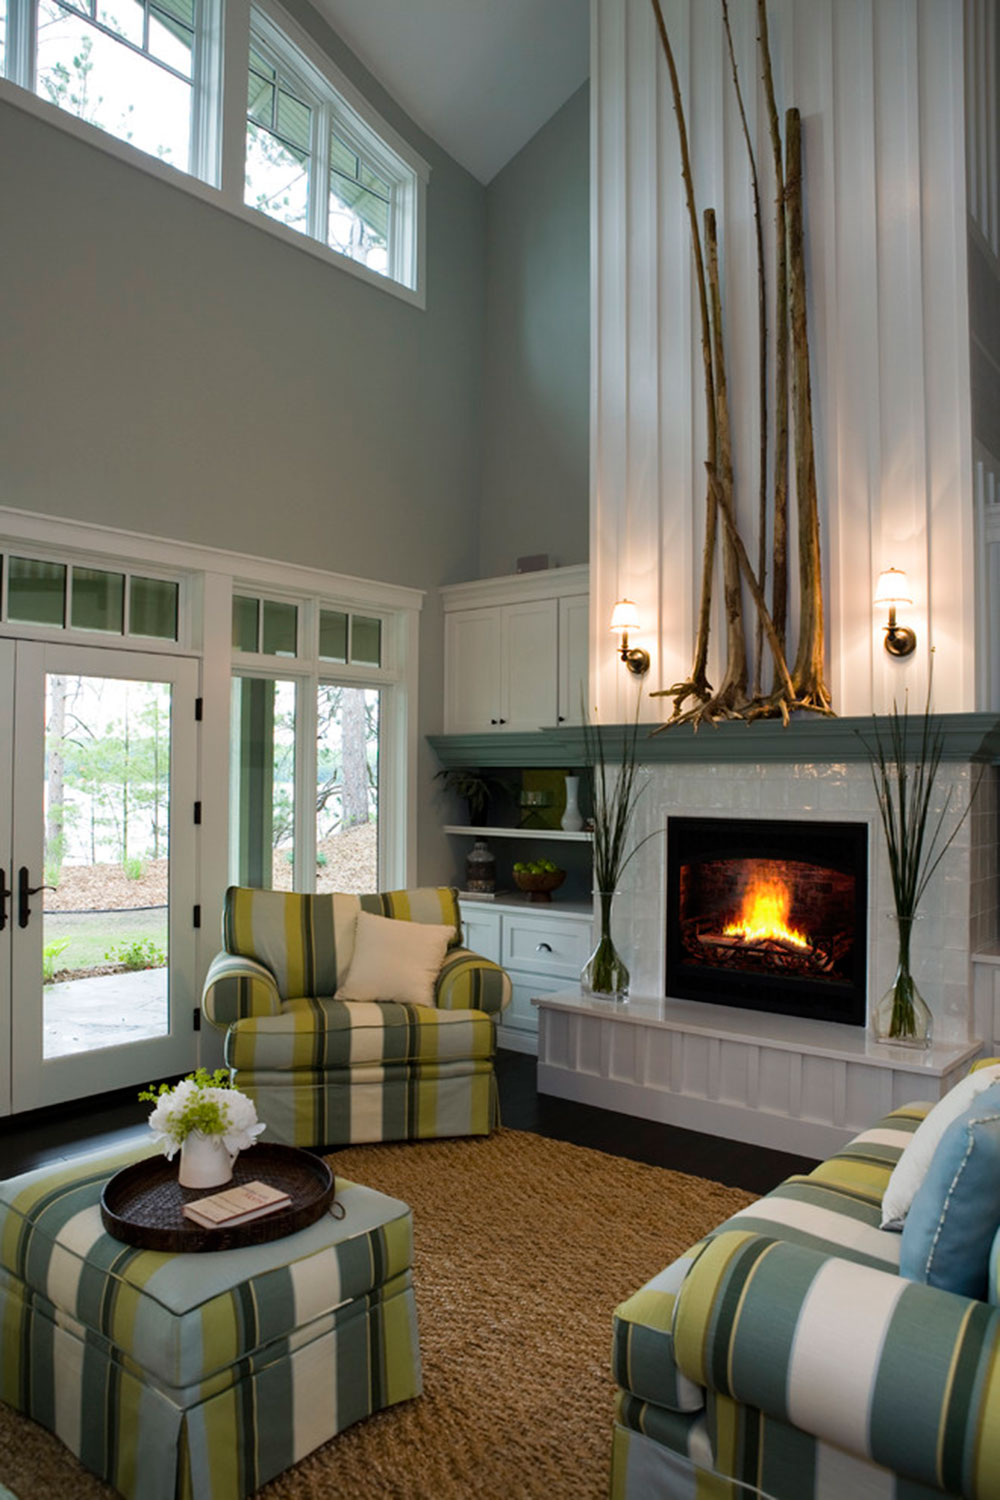 Fireplace-mantling-decoration-ideas-for-a-cozy-home14 fireplace mantling-decoration-ideas for a cozy home